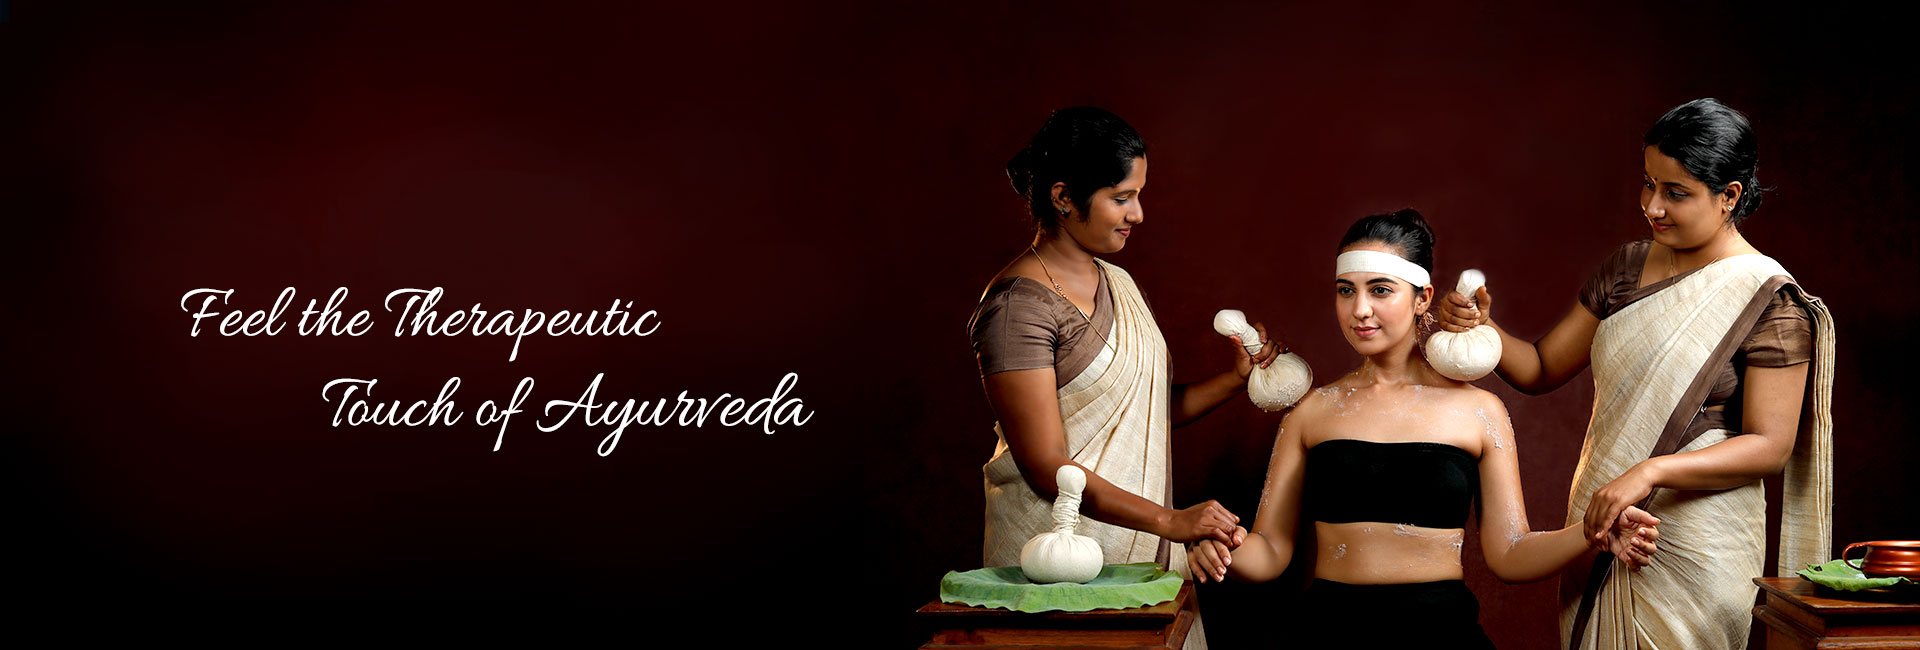 Feel the Therapeutic Touch of Ayurveda